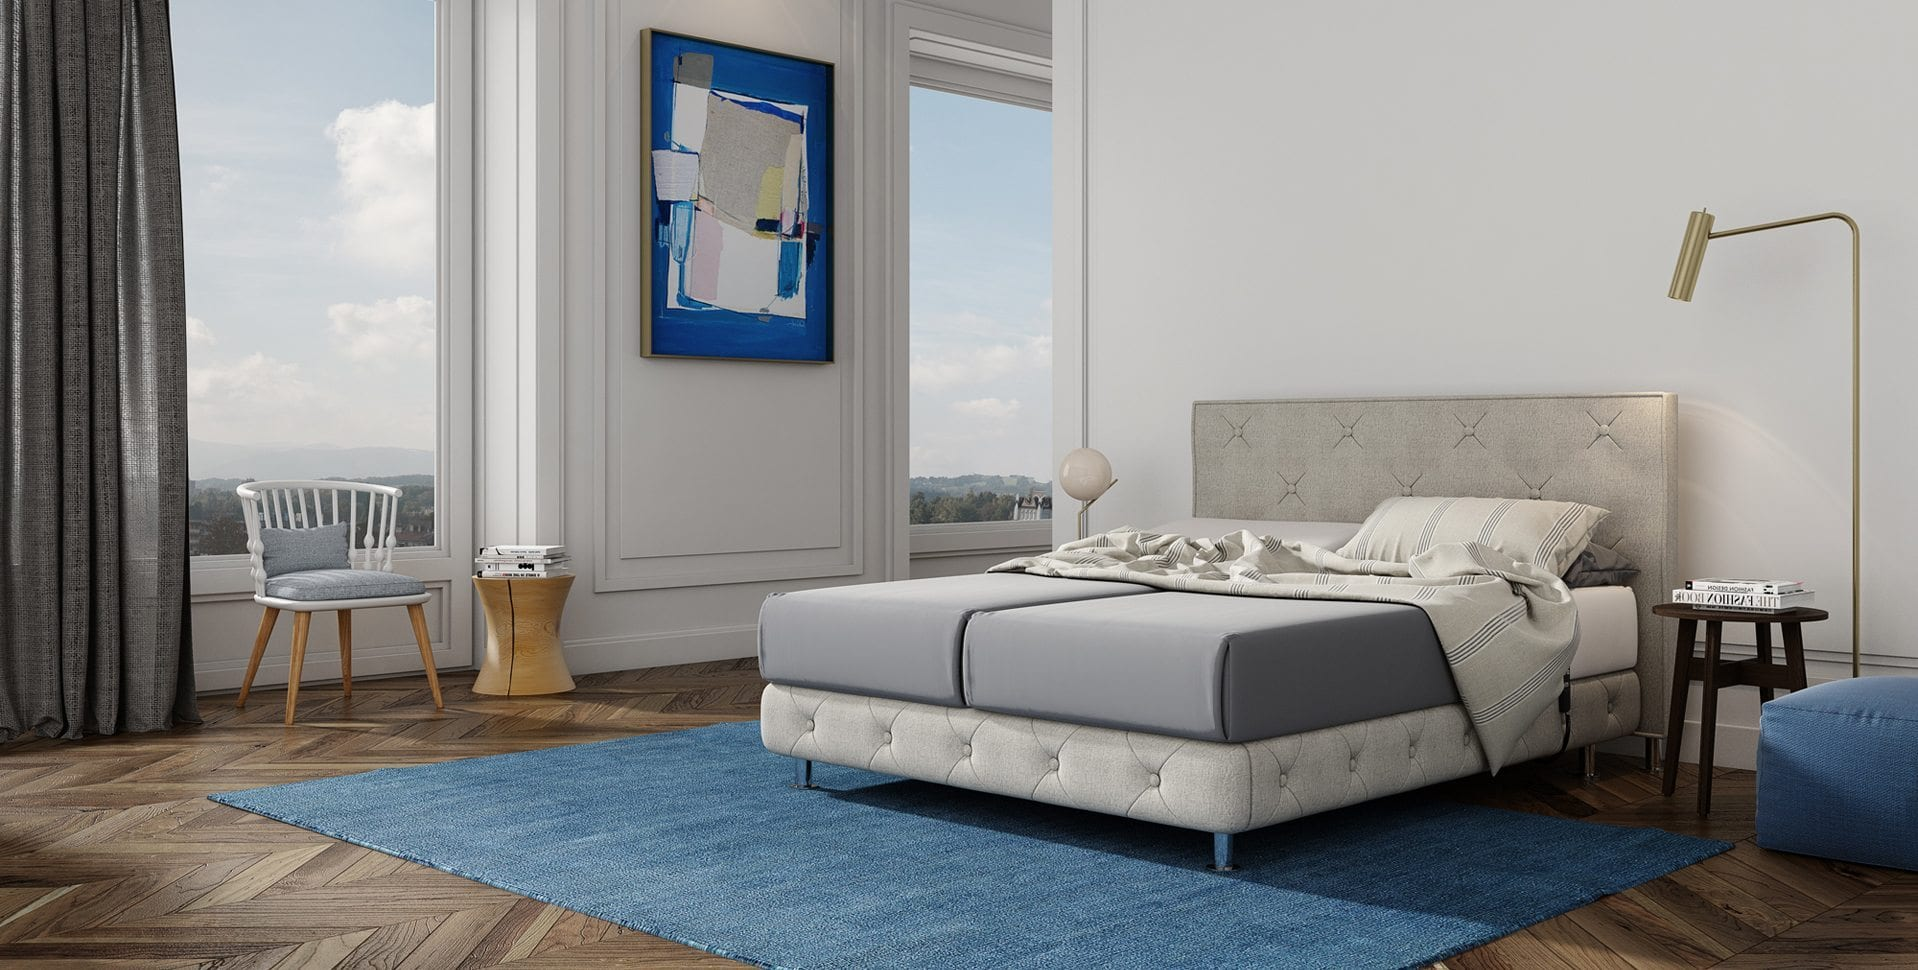 Maayan-Golan_Architectural-Visualization_product-visualization_ Adjustable-bed_american-system_05